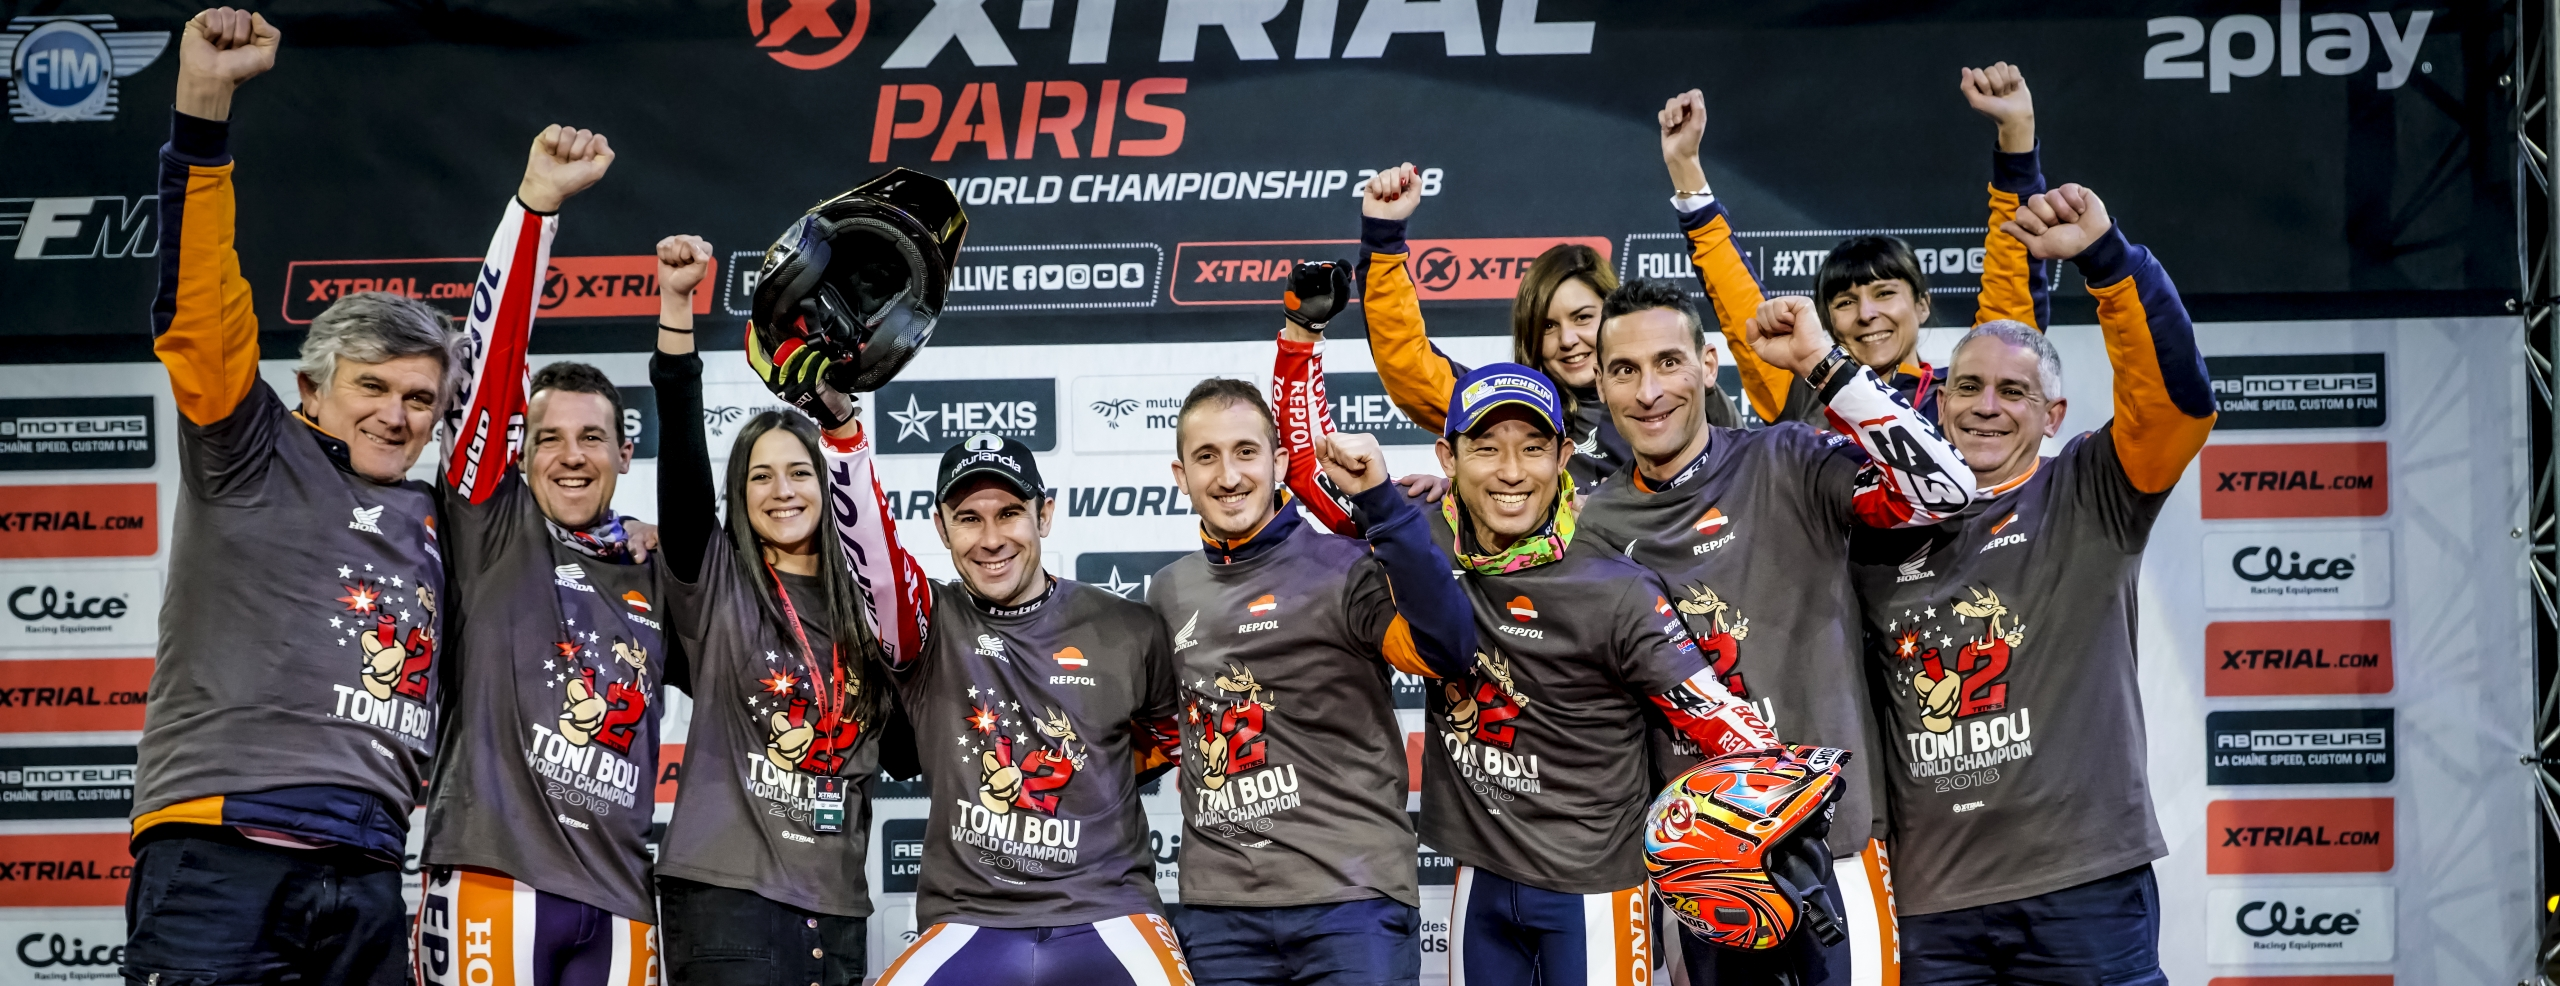 Toni Bou, mightier than ever, clinches a twelfth X-Trial title in Paris